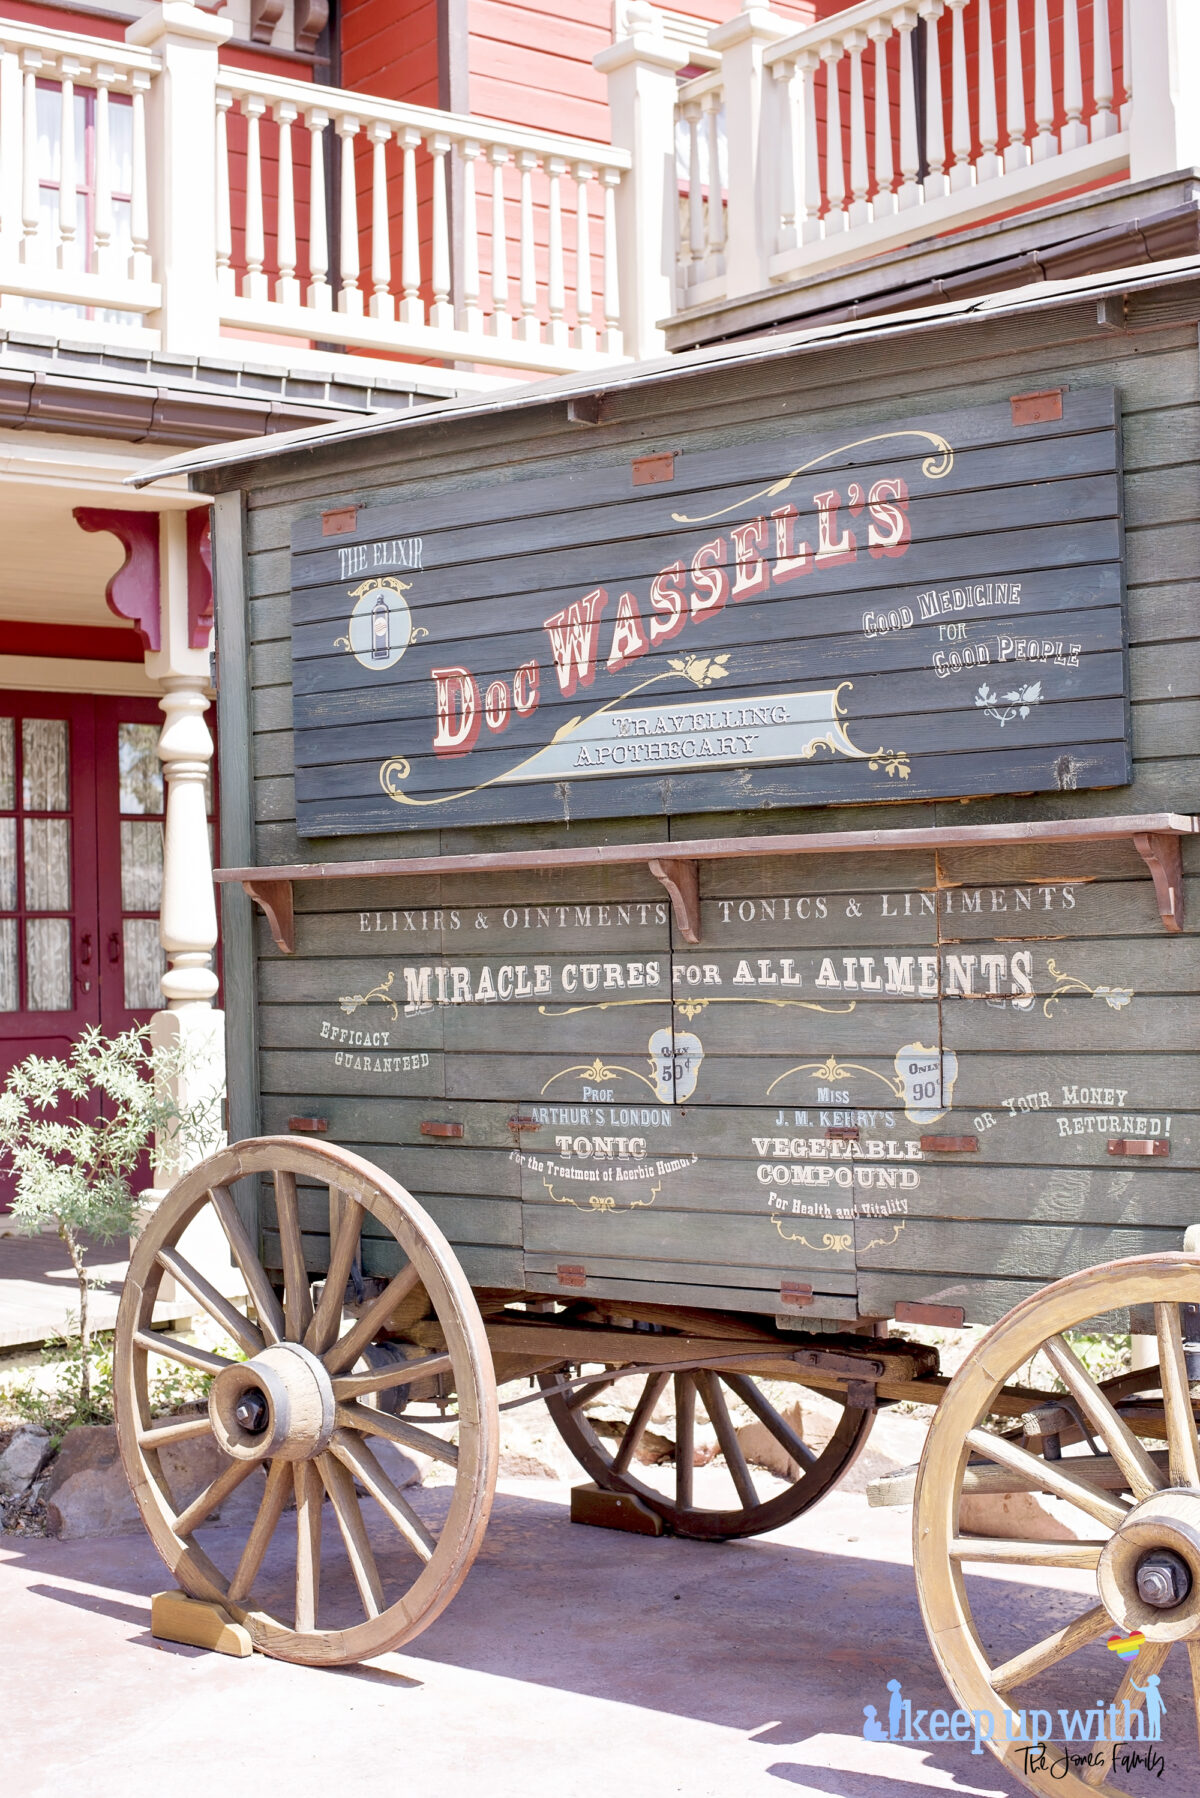 Image showsDoc Wassell's Miracle Cures for All Ailments caravan in Frontierland outside the Disneyland Paris Spirit Photography Booth where you can print a personalised copy of the Mysterious Chronicle by Phantom Manor. Image by Keep Up  With The Jones Family.